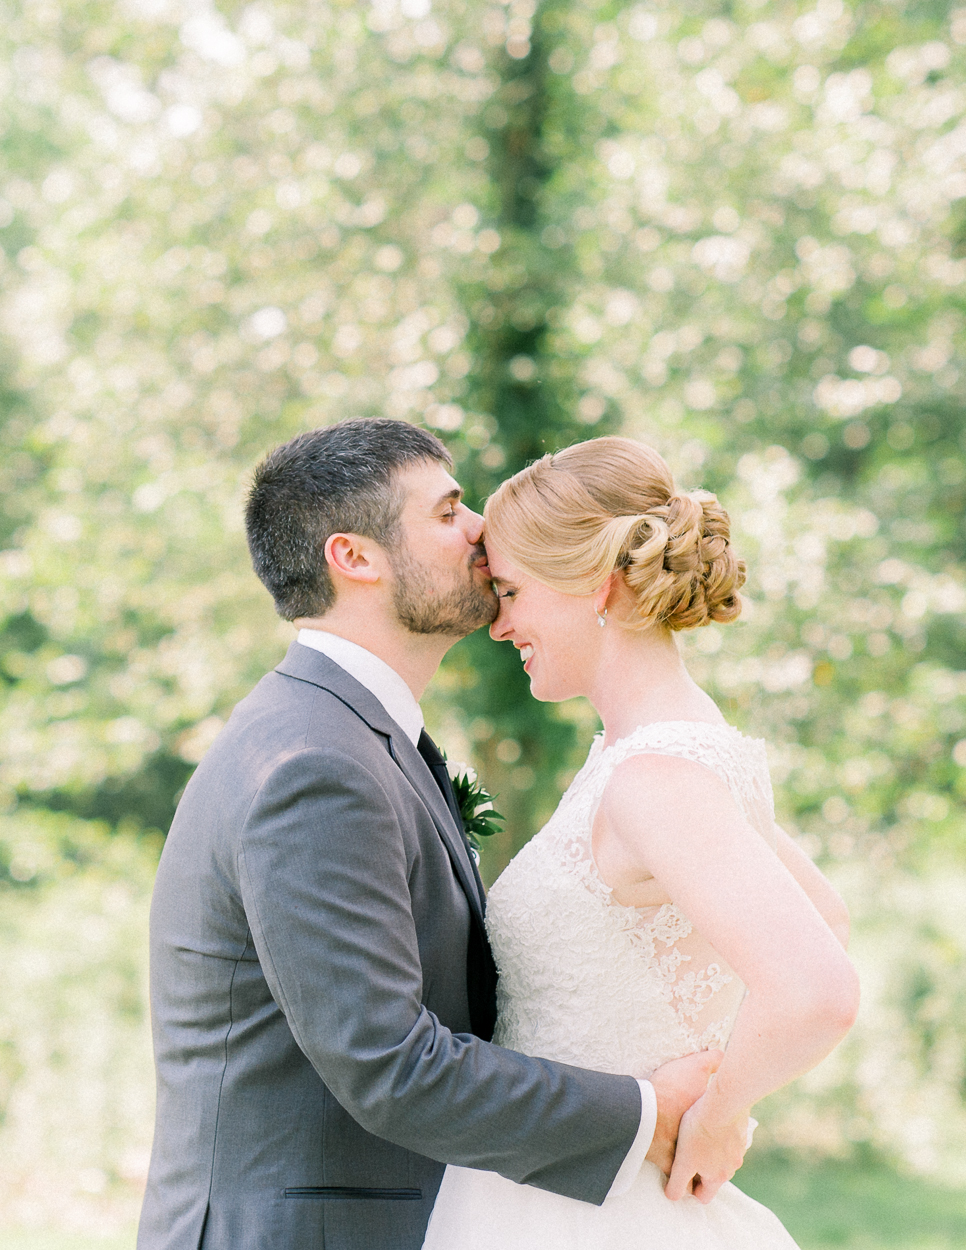 virginiawedding_vineyardwedding_LostCreekWinery_LeesburgWedding_youseephotography_Siegel (82).JPG